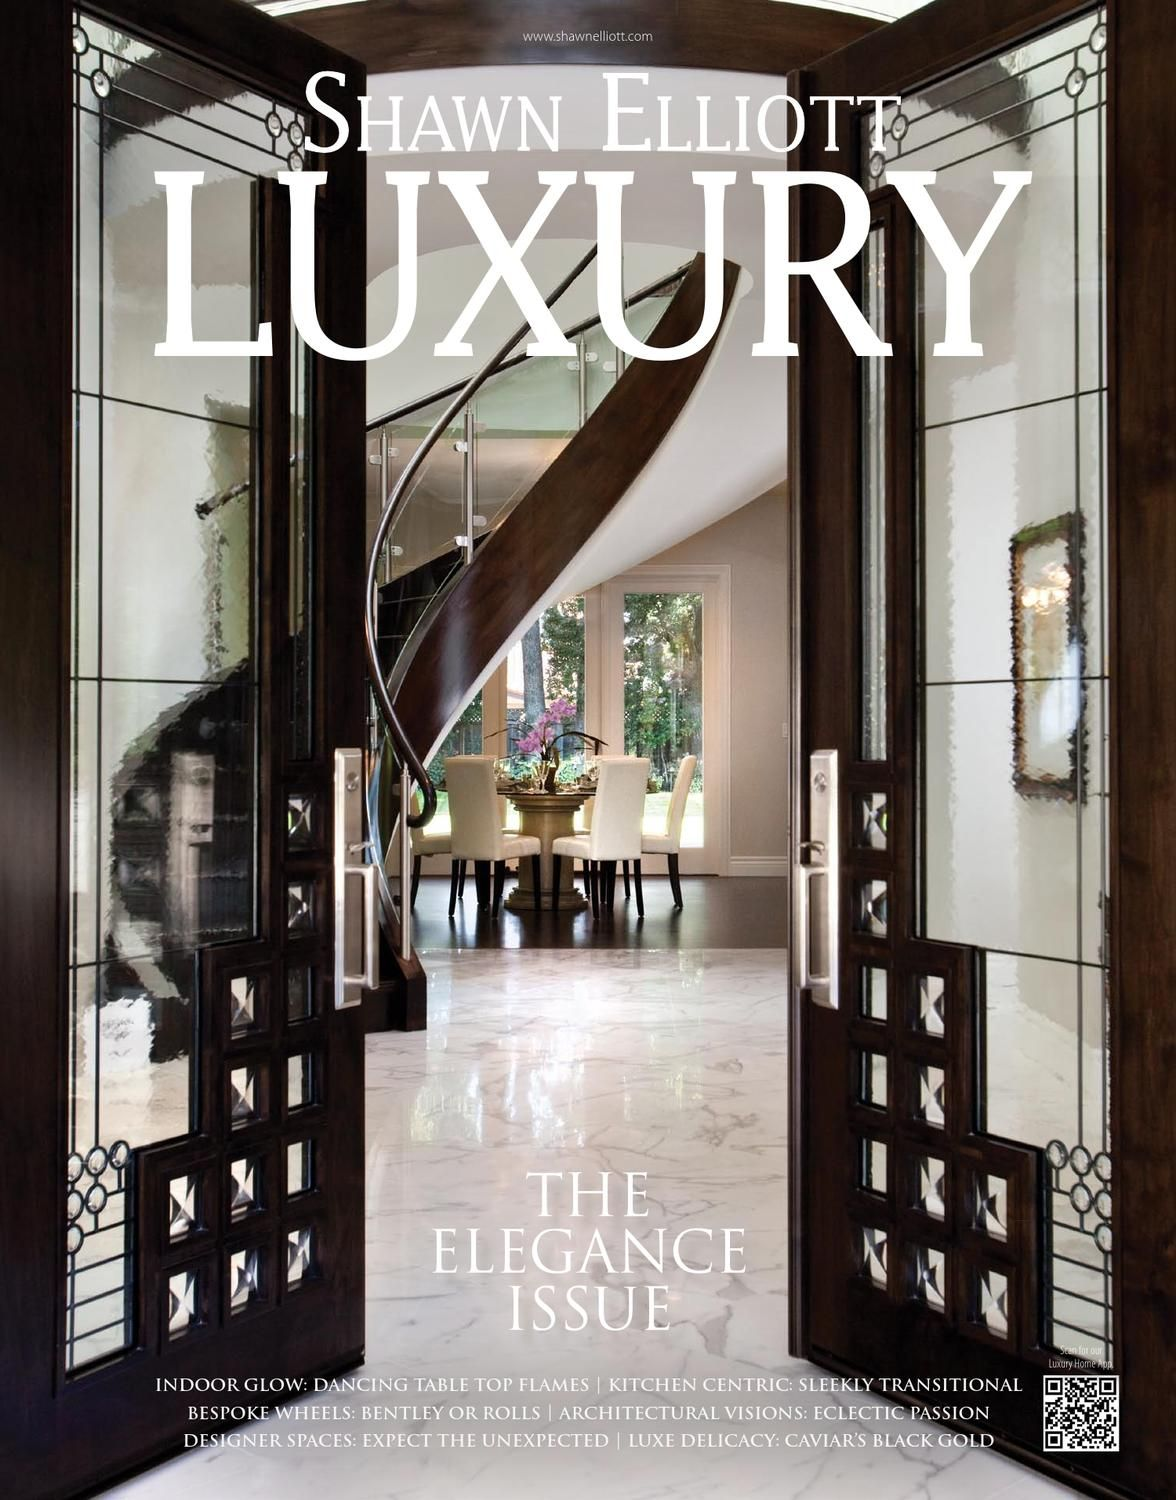 Shawn Elliott LUXURY Magazine - The Elegance Issue